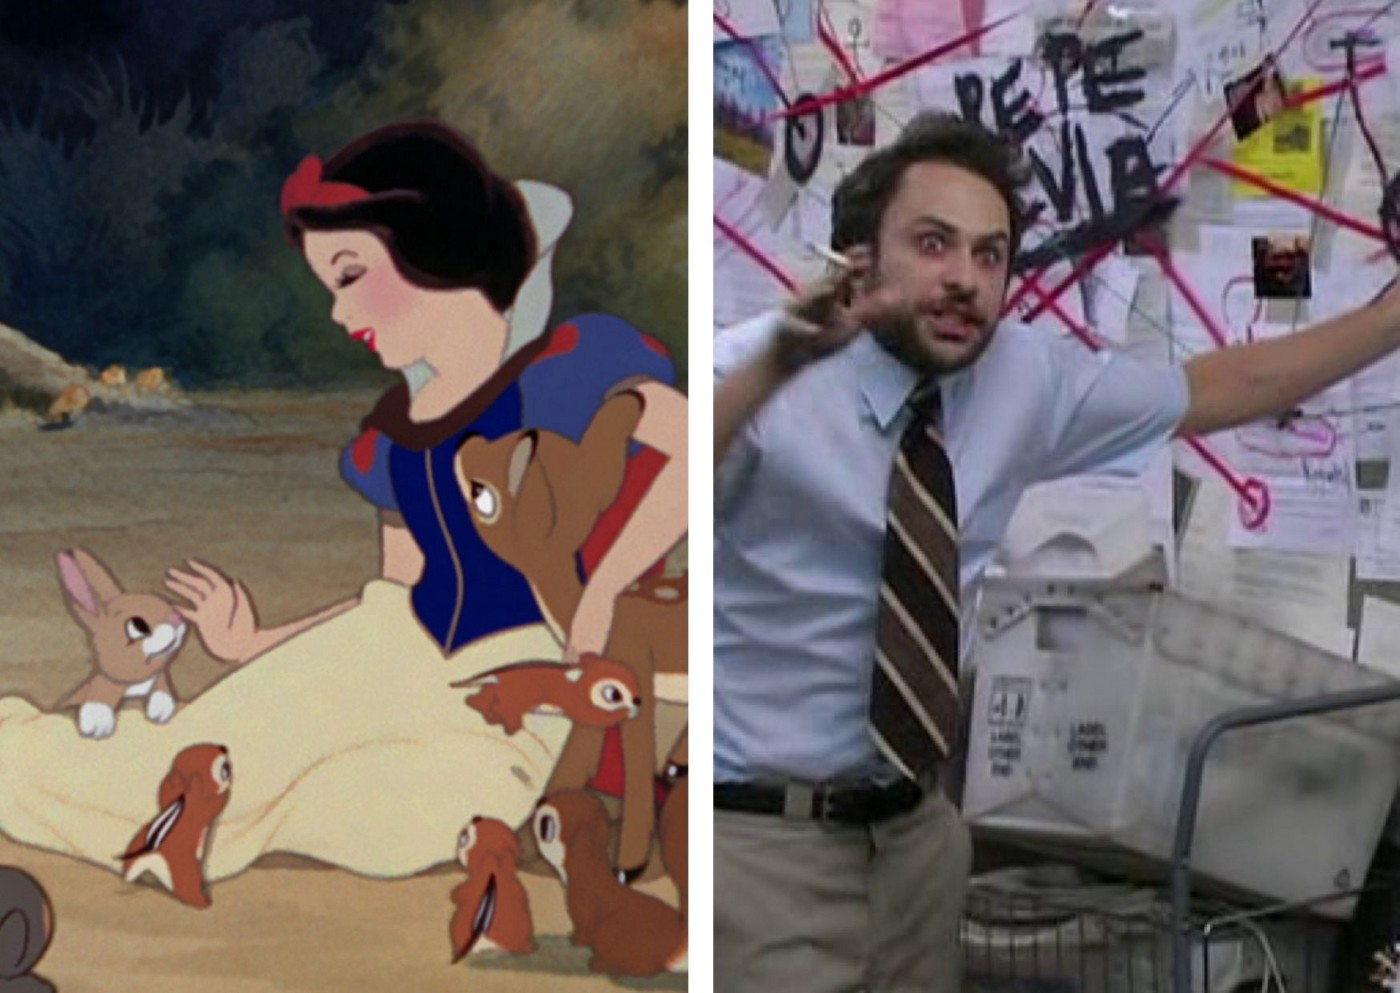 two images side-by-side; the LHS is Snow White, sweetly singing to adorable animals. This is contrasted with the RHS image, of a wild-eyed dishevelled man pointing emphatically at a very messy whiteboard of diagrams, notes, and map lines